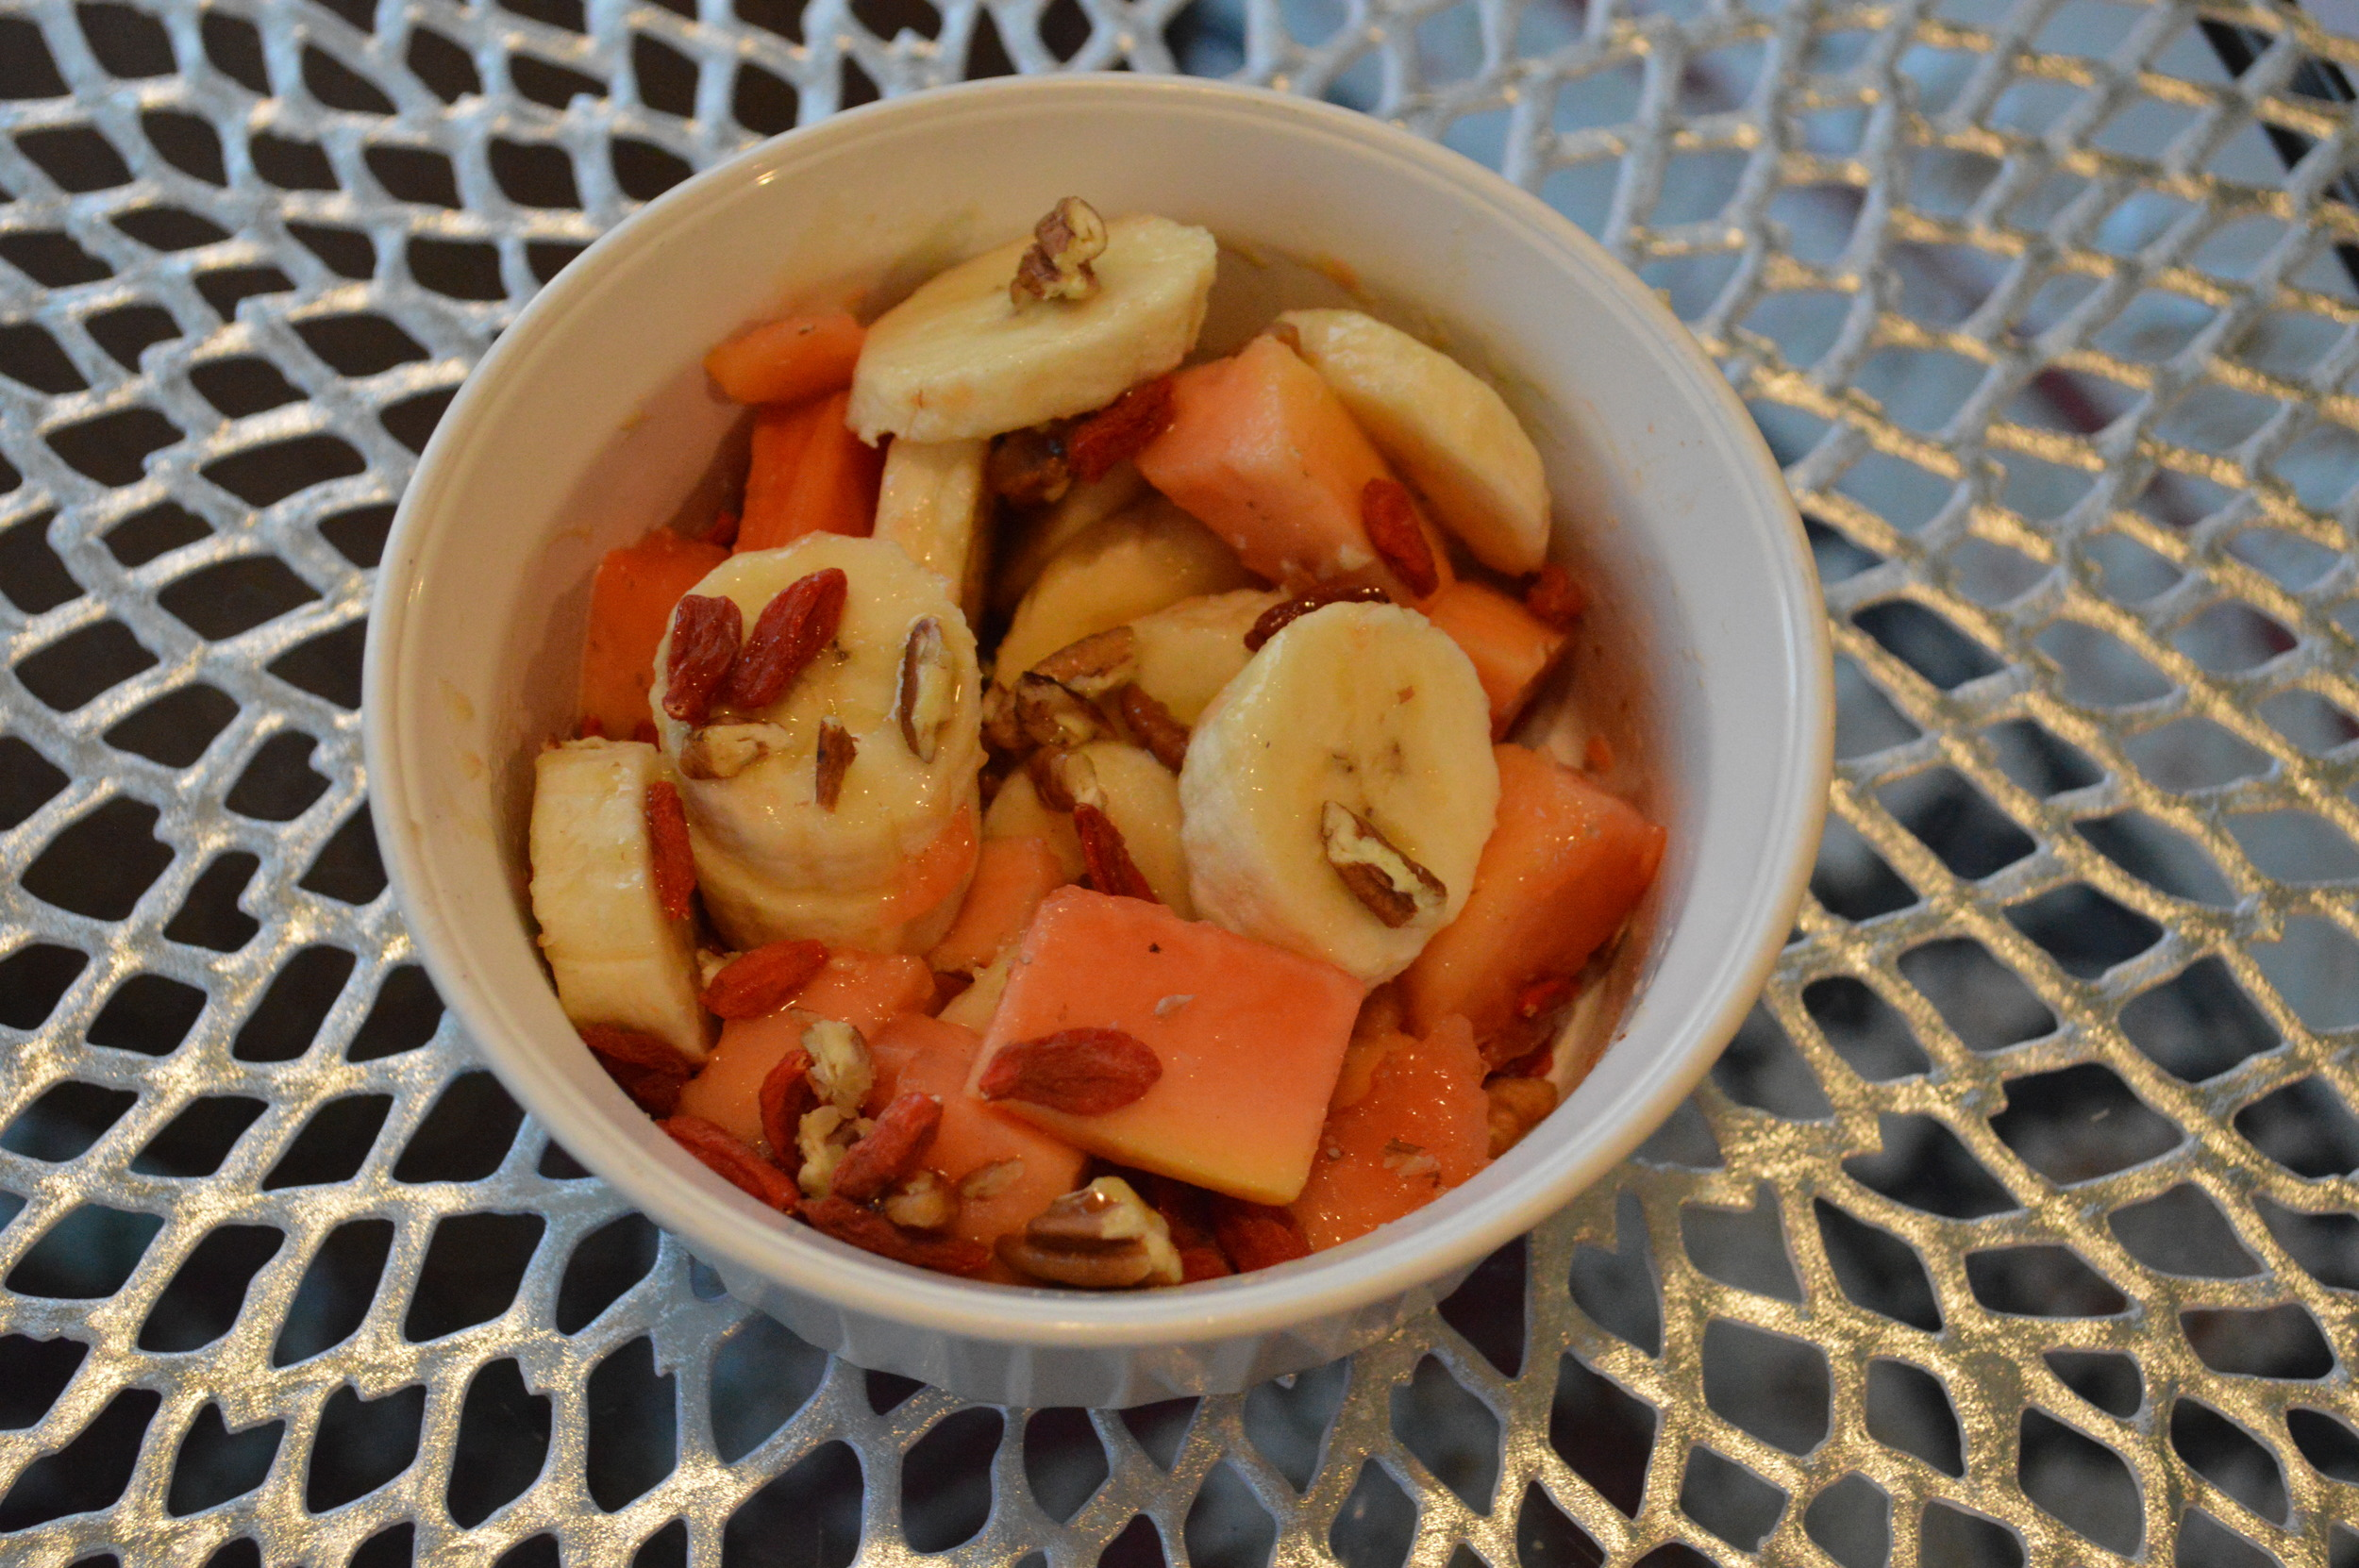 Banana + Papaya + Pecans + Goji Berries